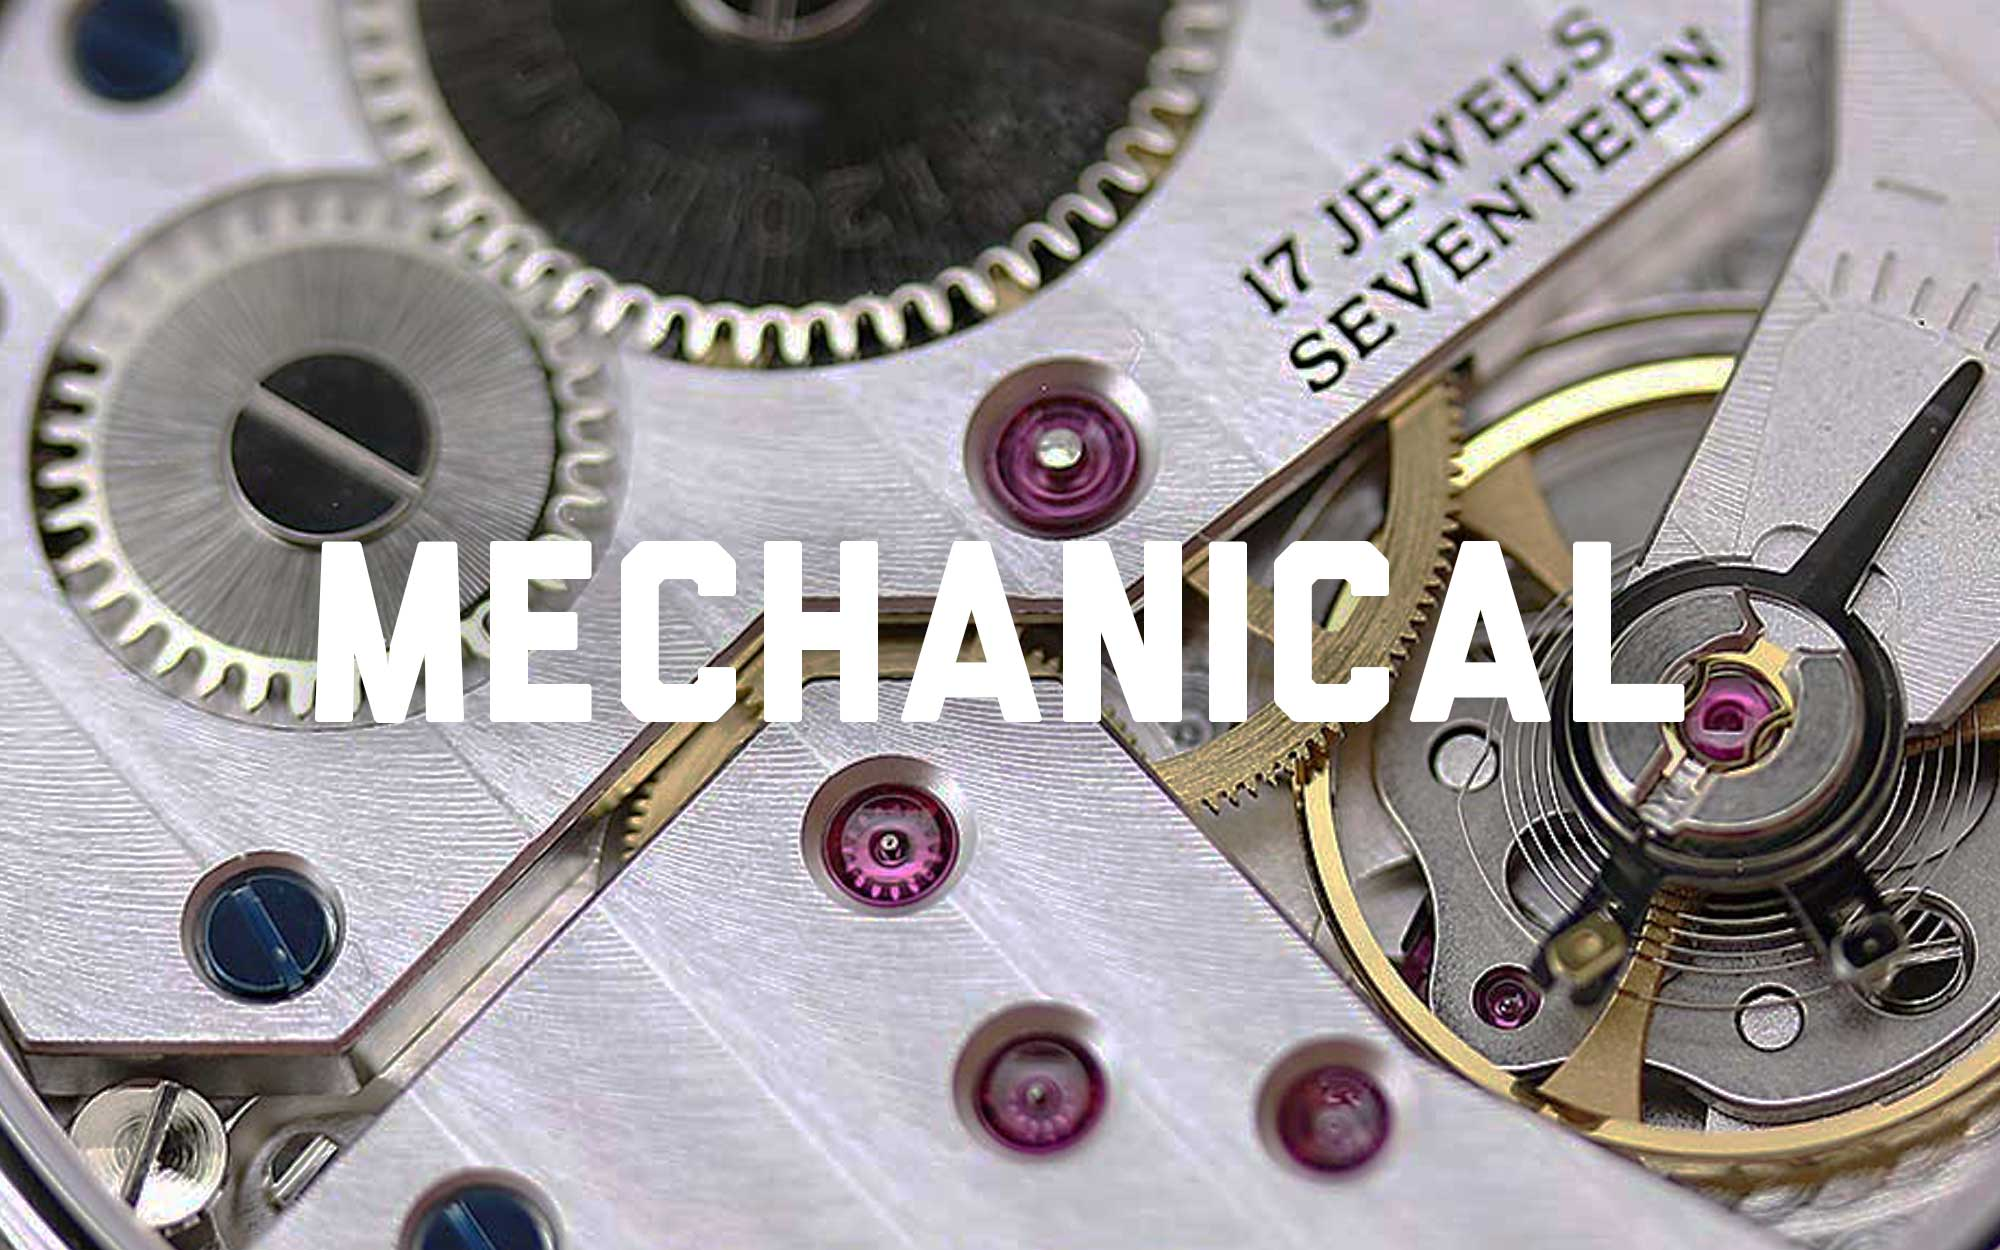 Discover Mechanical